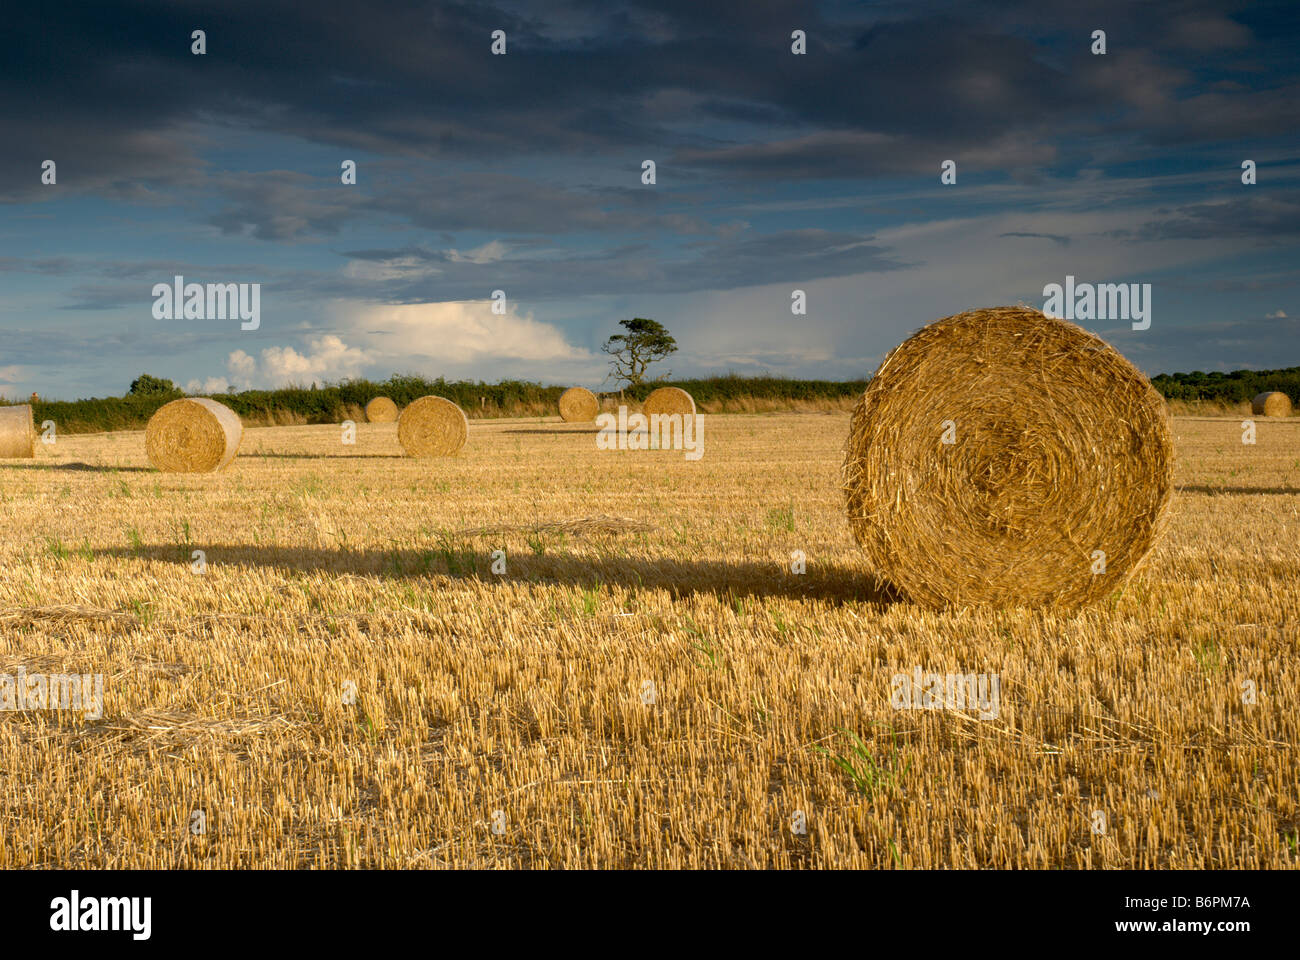 Straw bales in a field - Stock Image